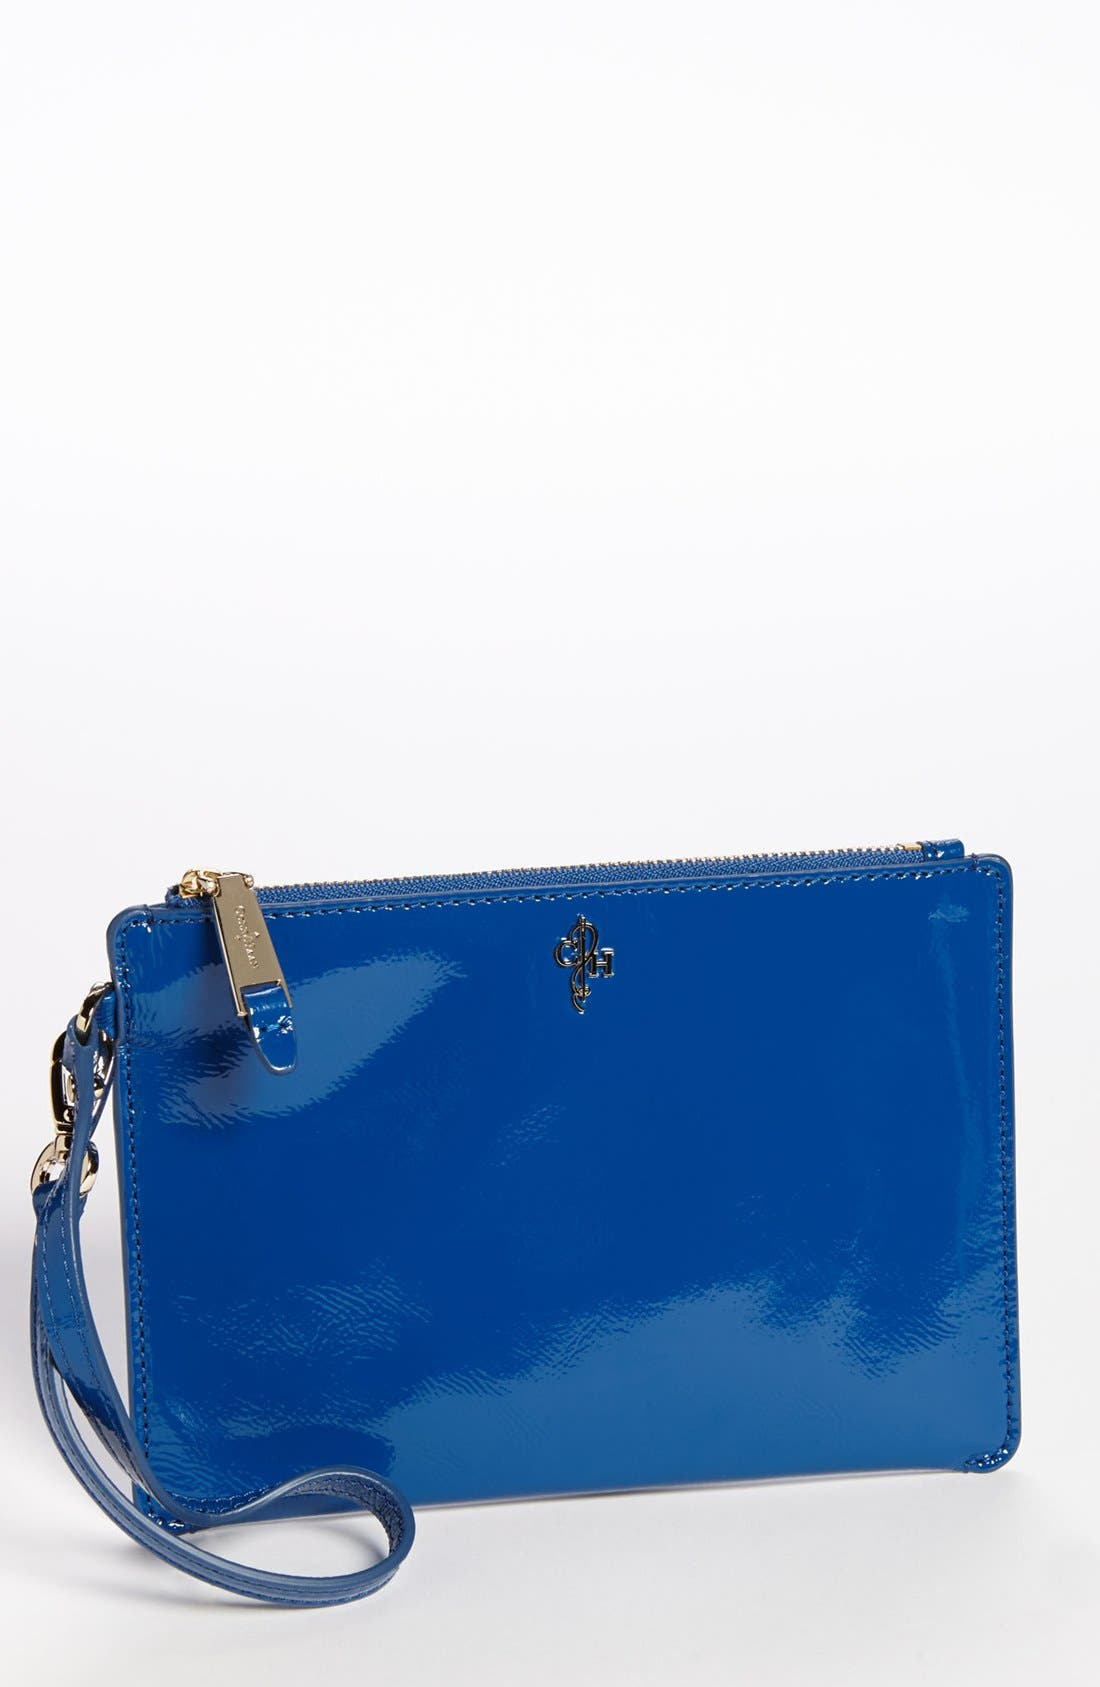 Alternate Image 1 Selected - Cole Haan 'Medium' Zip Pouch